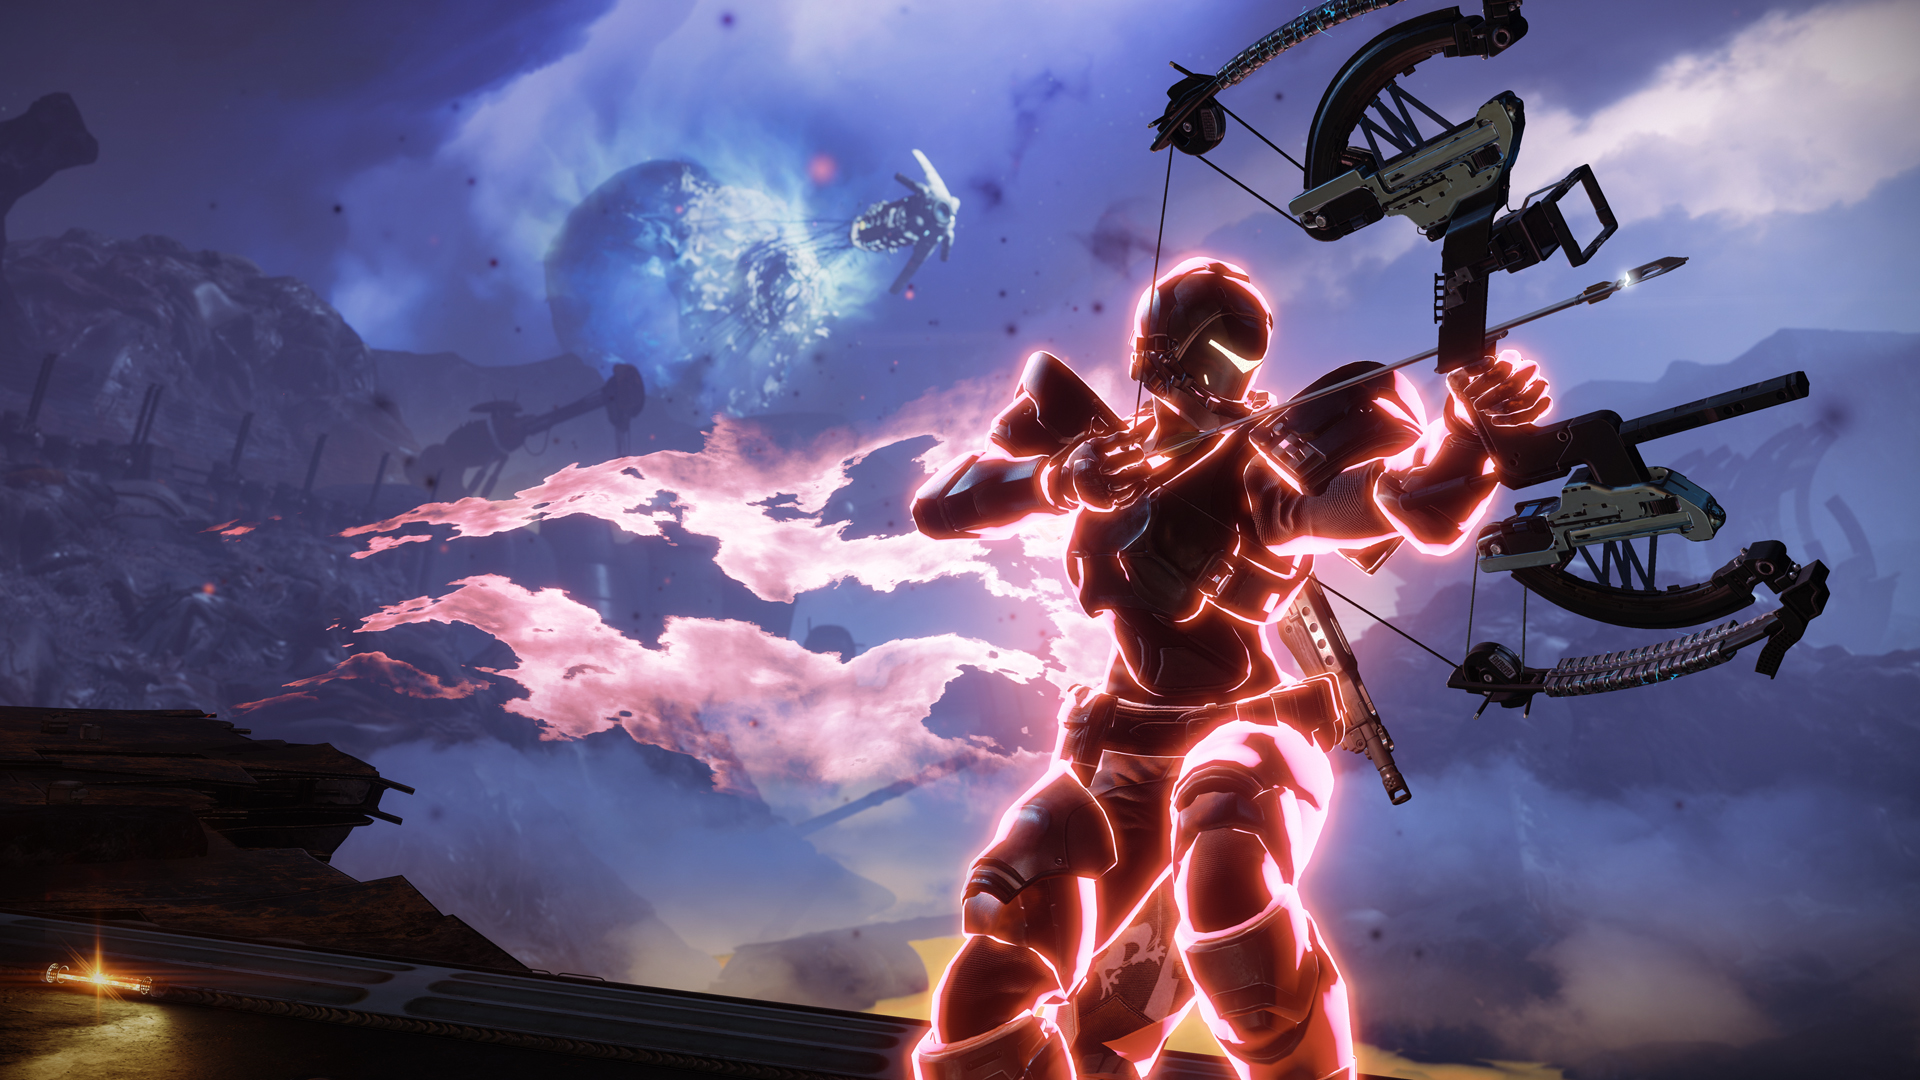 How to get from Power Level 500 to 600 in Destiny 2